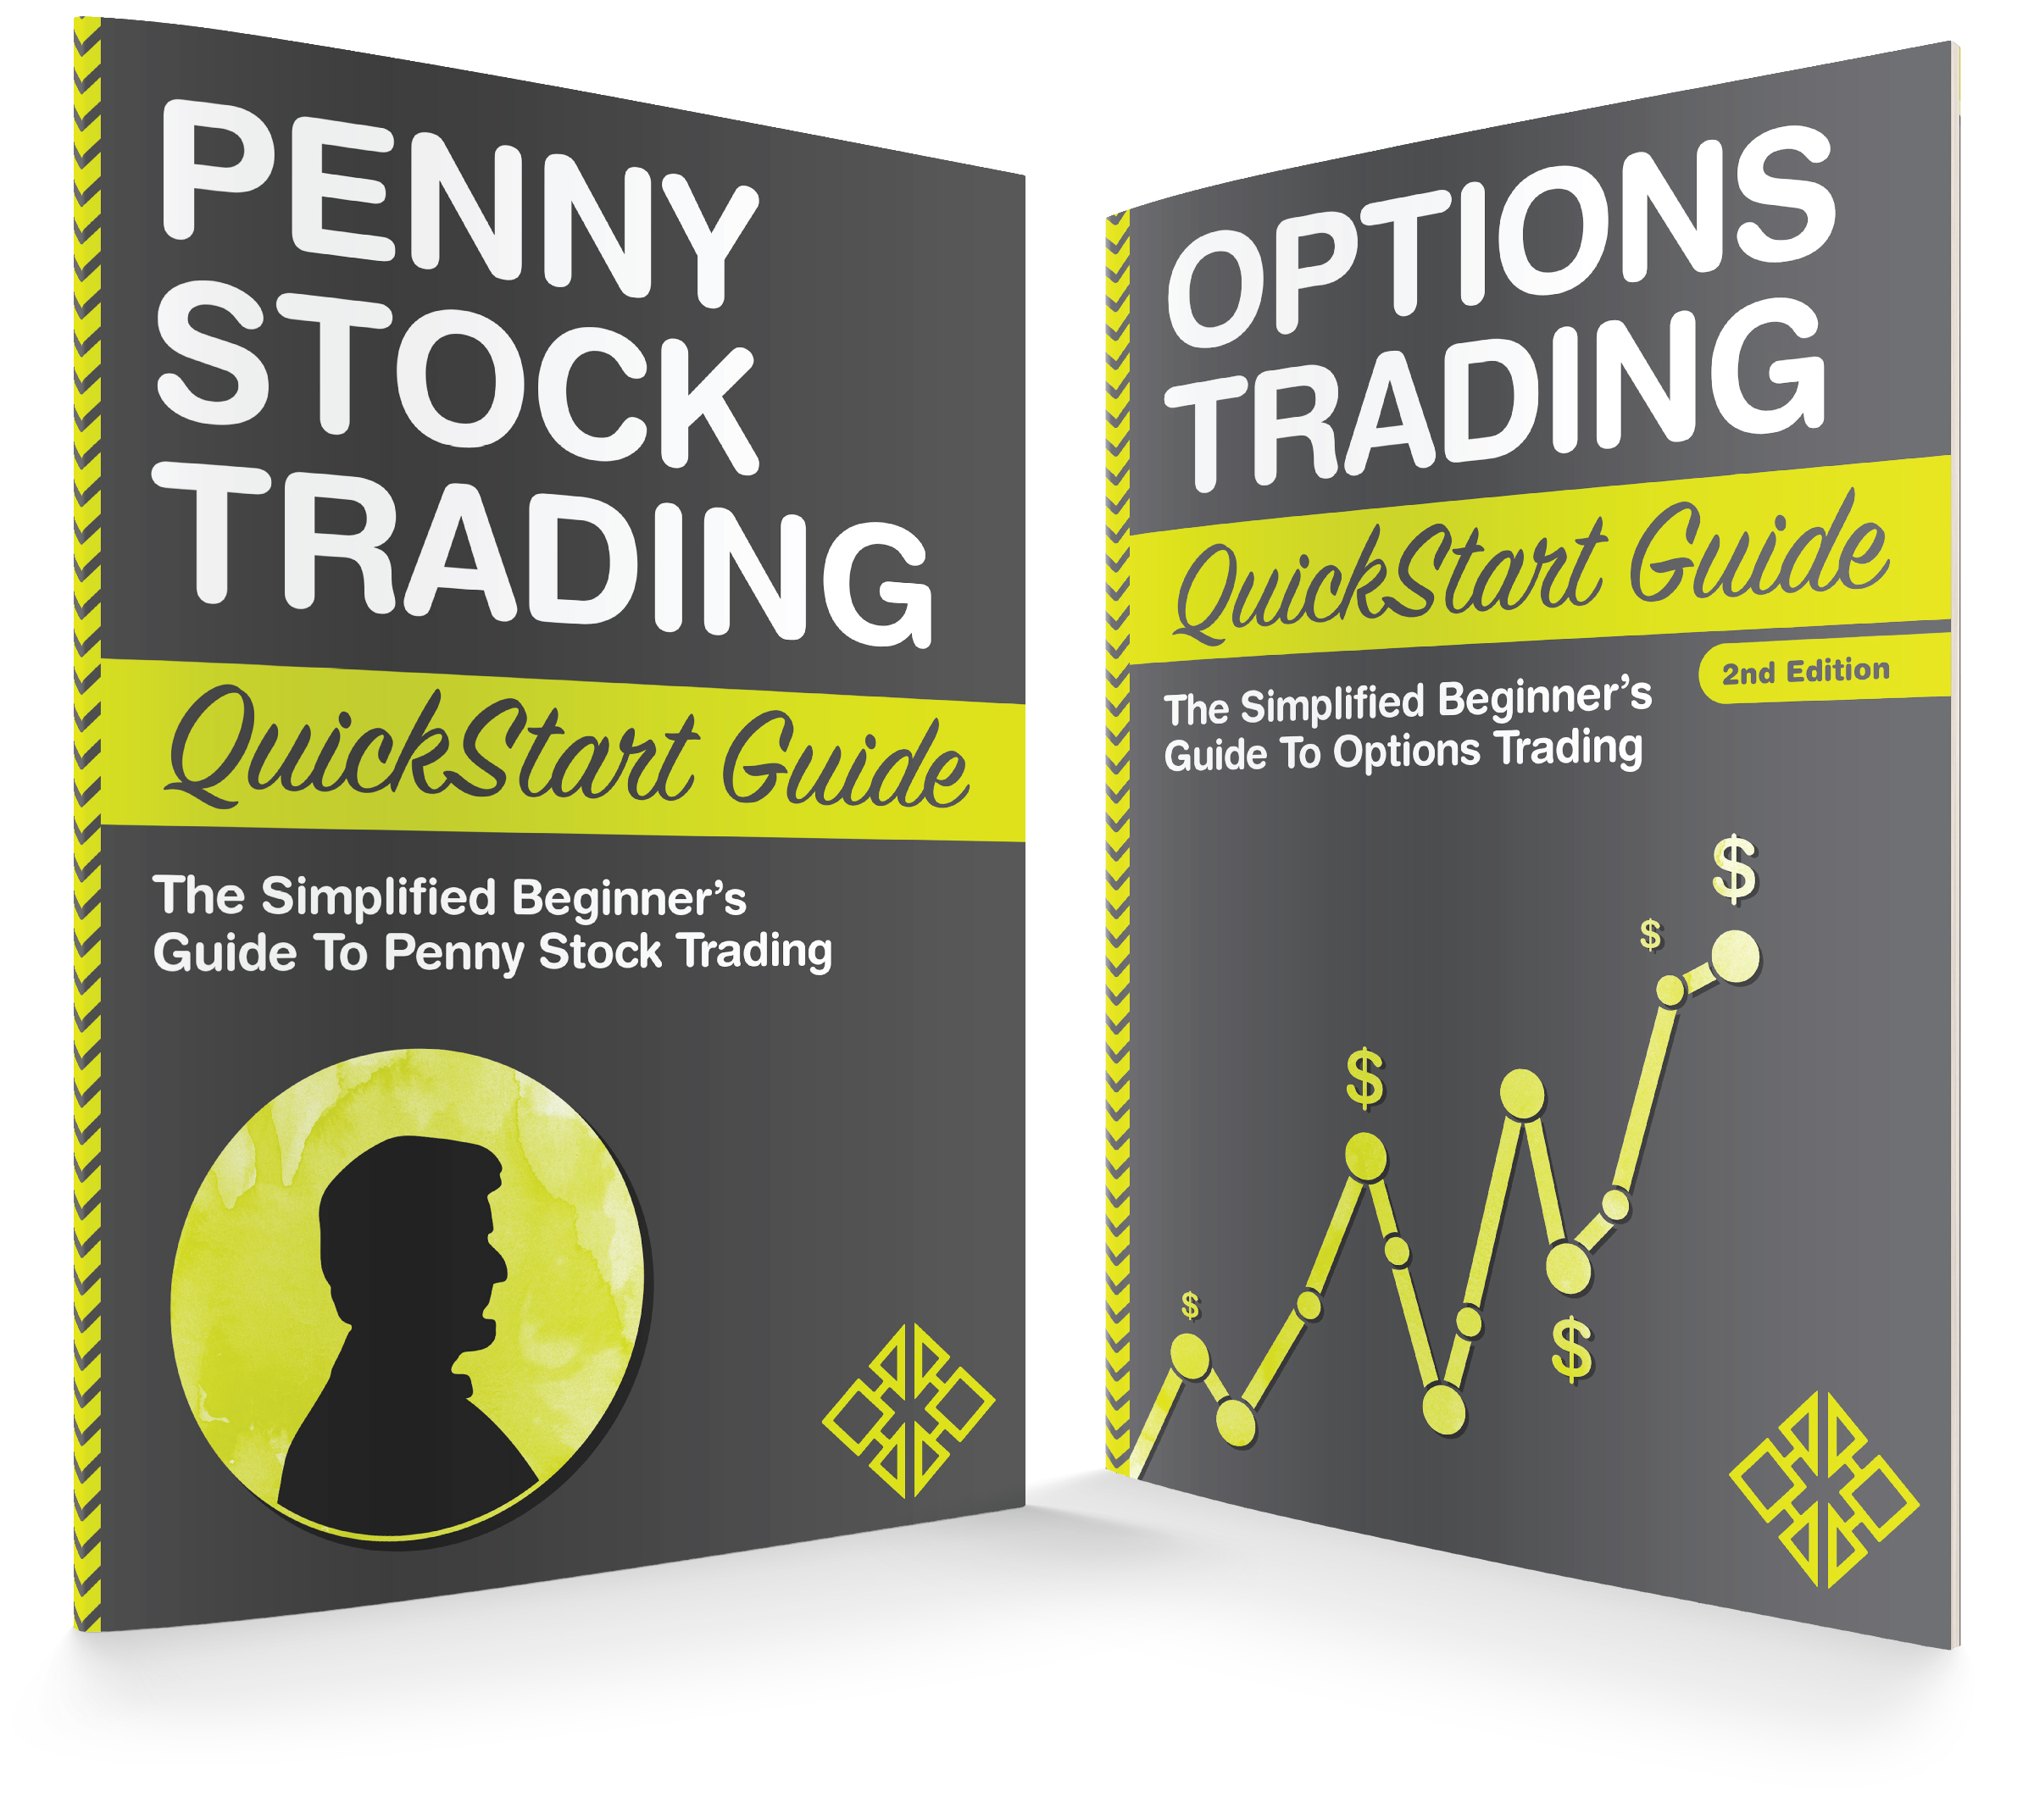 Best option trading books 2016